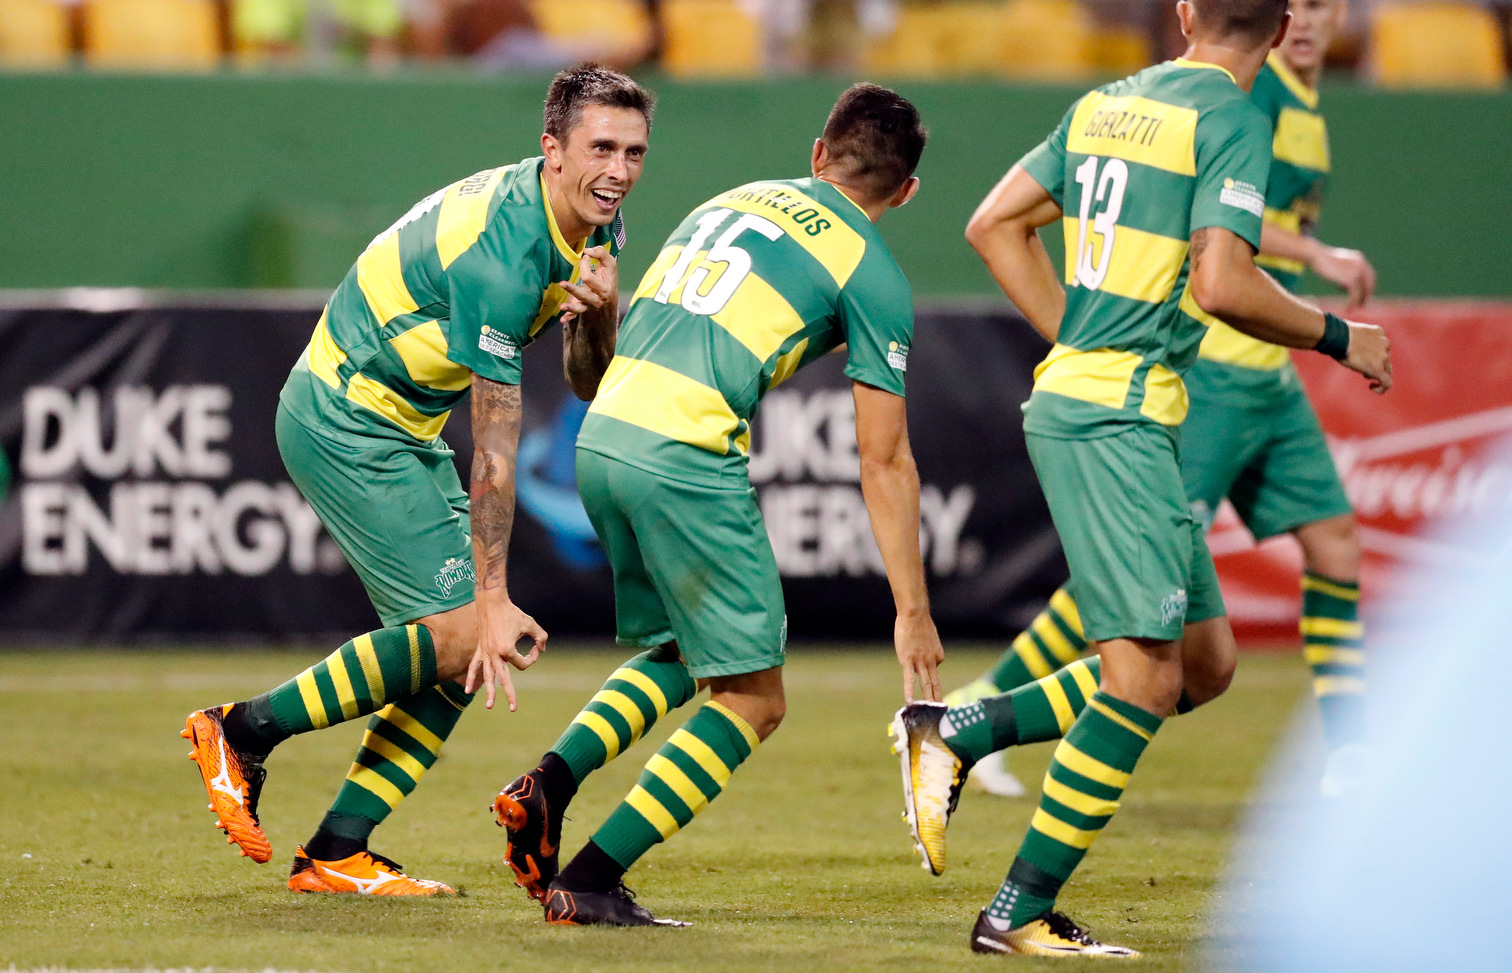 Rowdies vs Monarchs